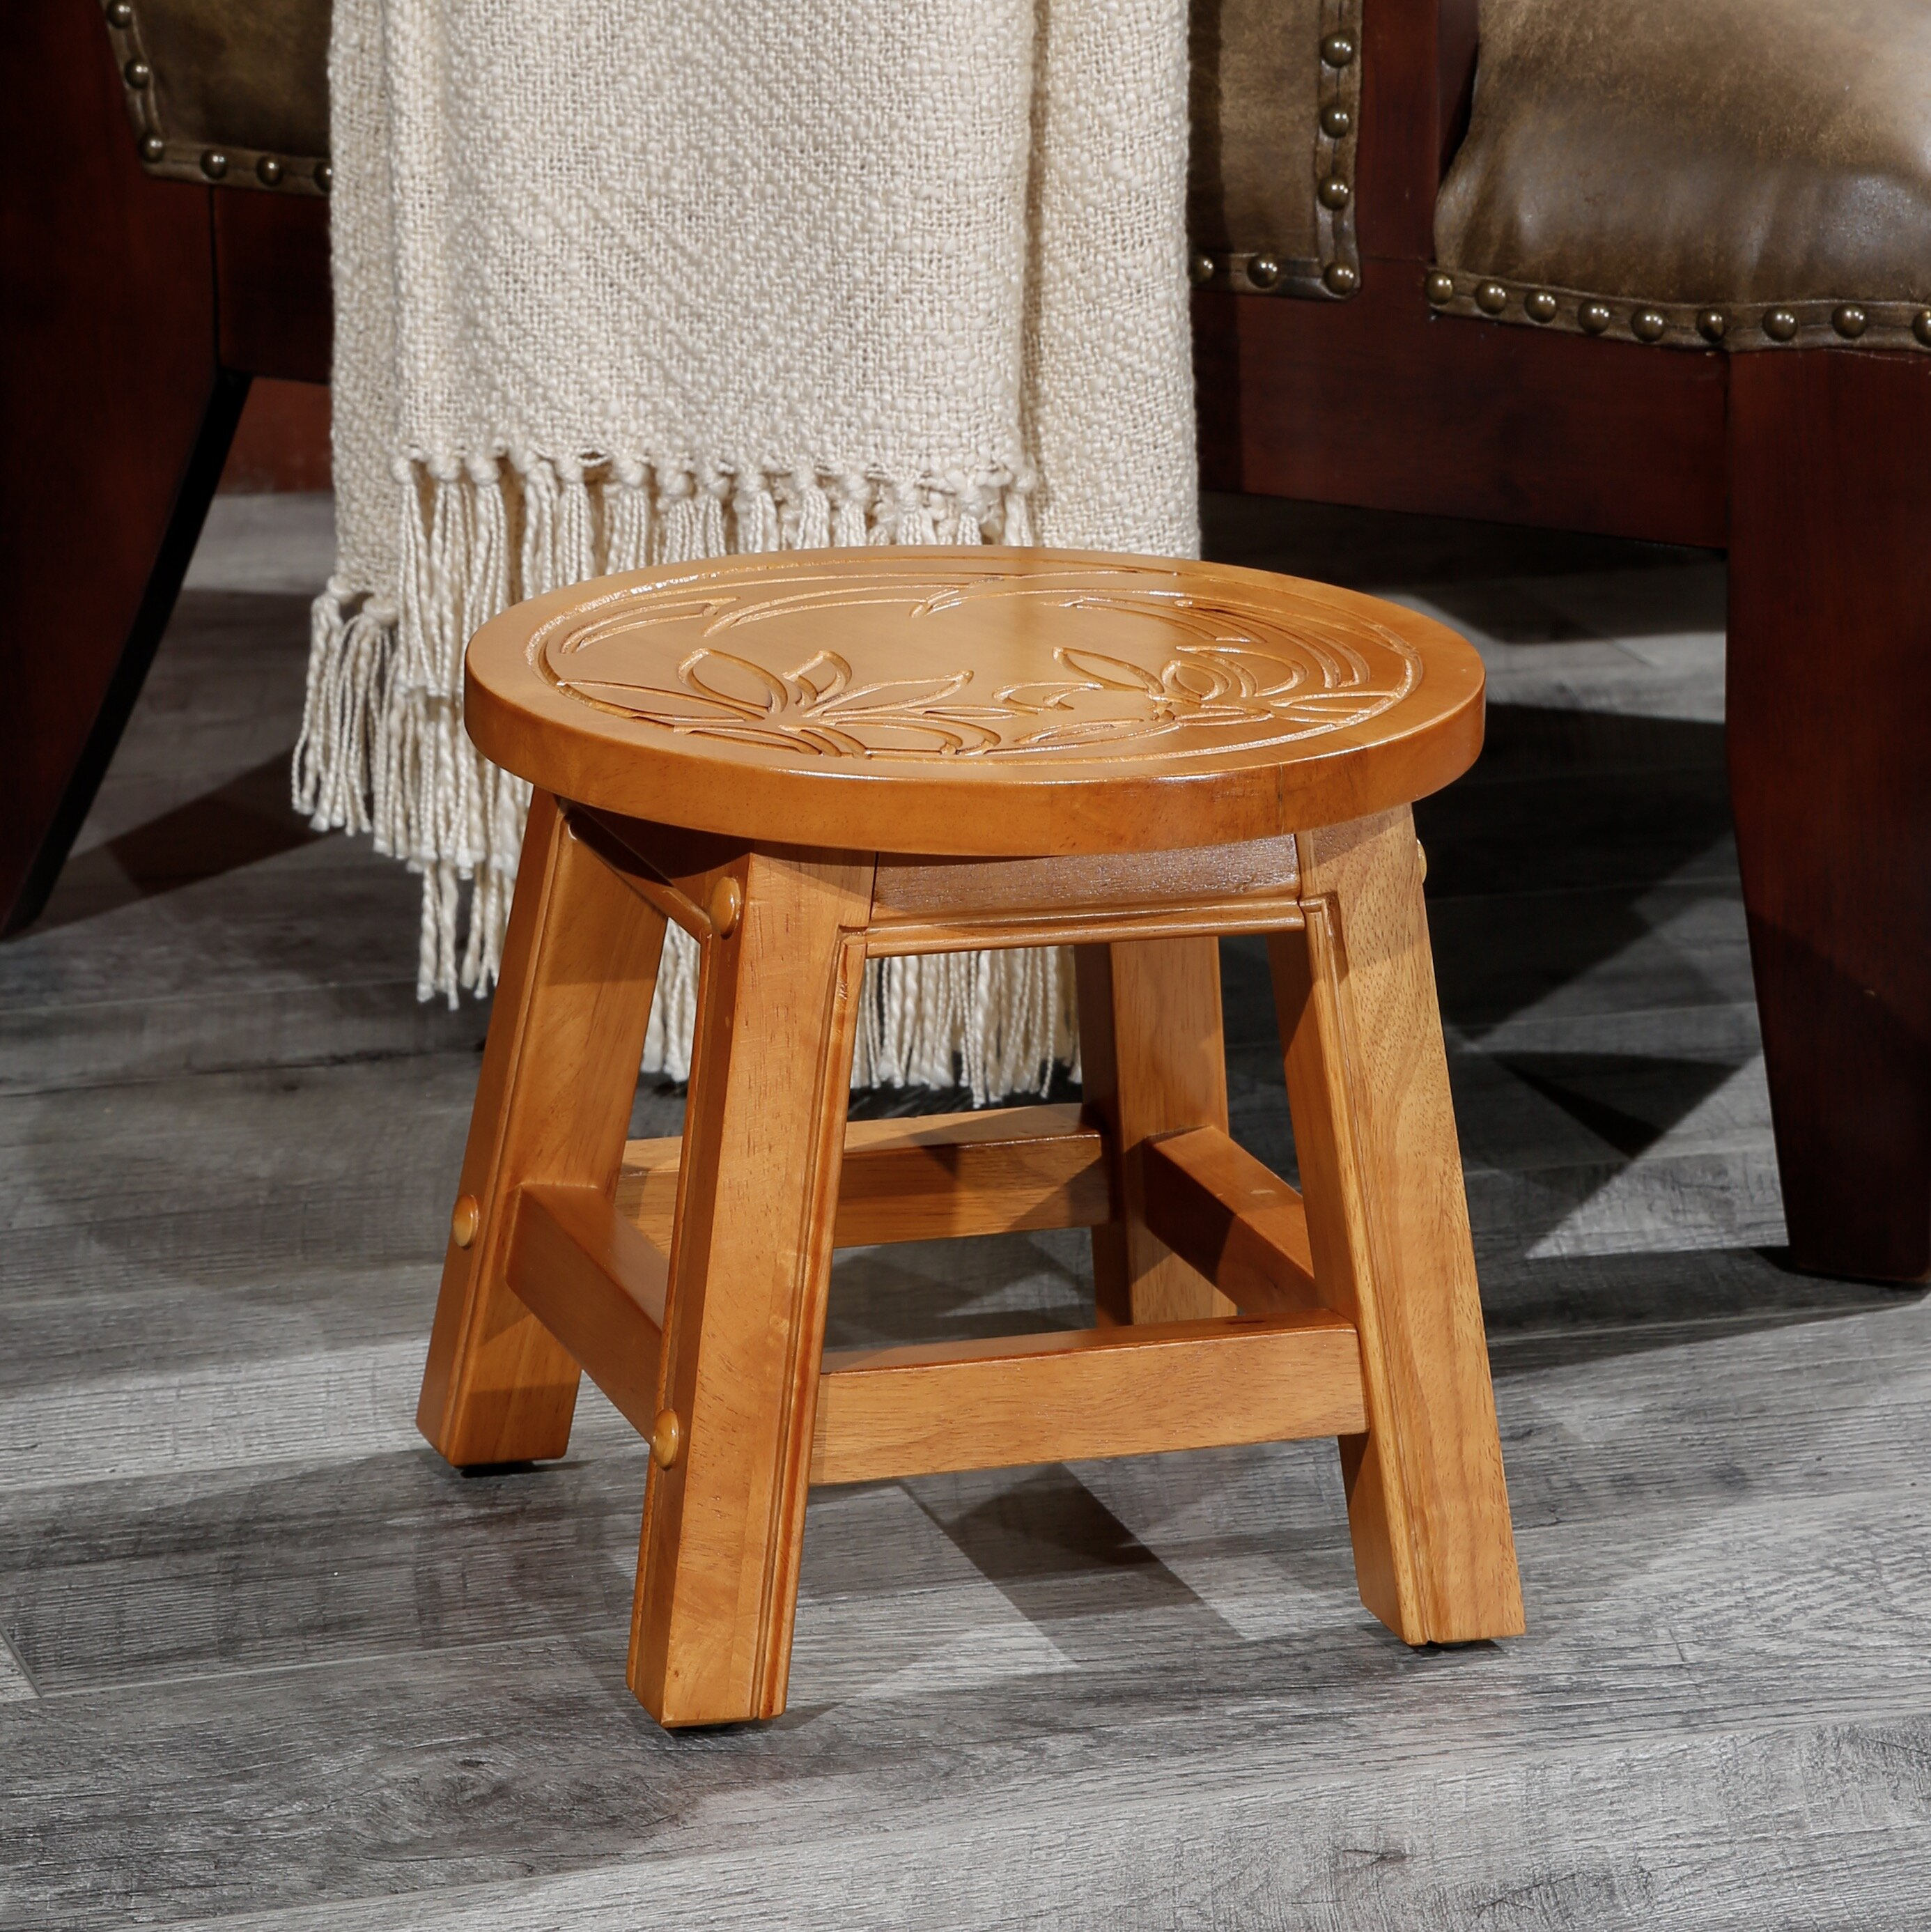 Bay Isle Home Charleigh Floral Fairplay Carved Wooden Accent Stool Wayfair